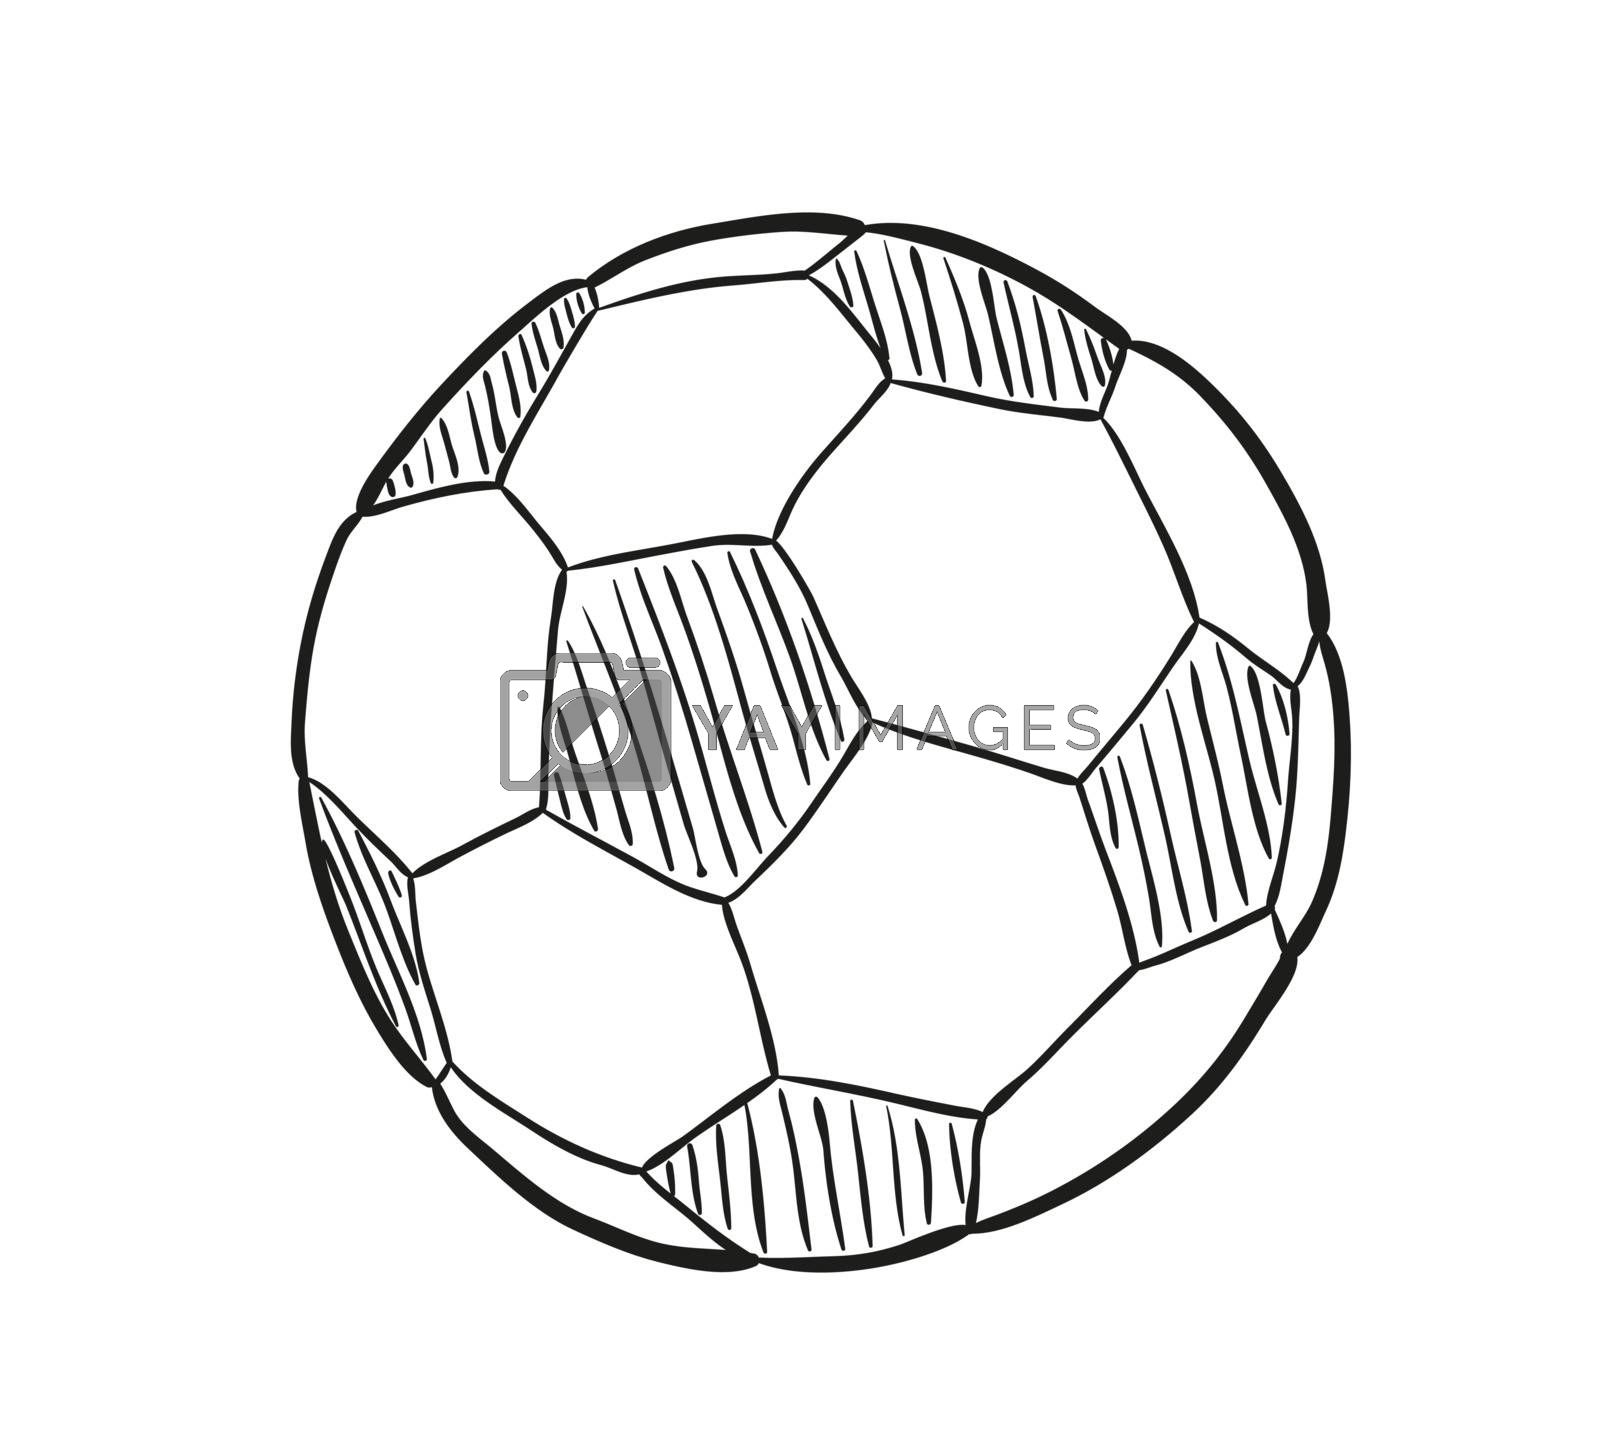 sketch of the football ball on white background, isolated